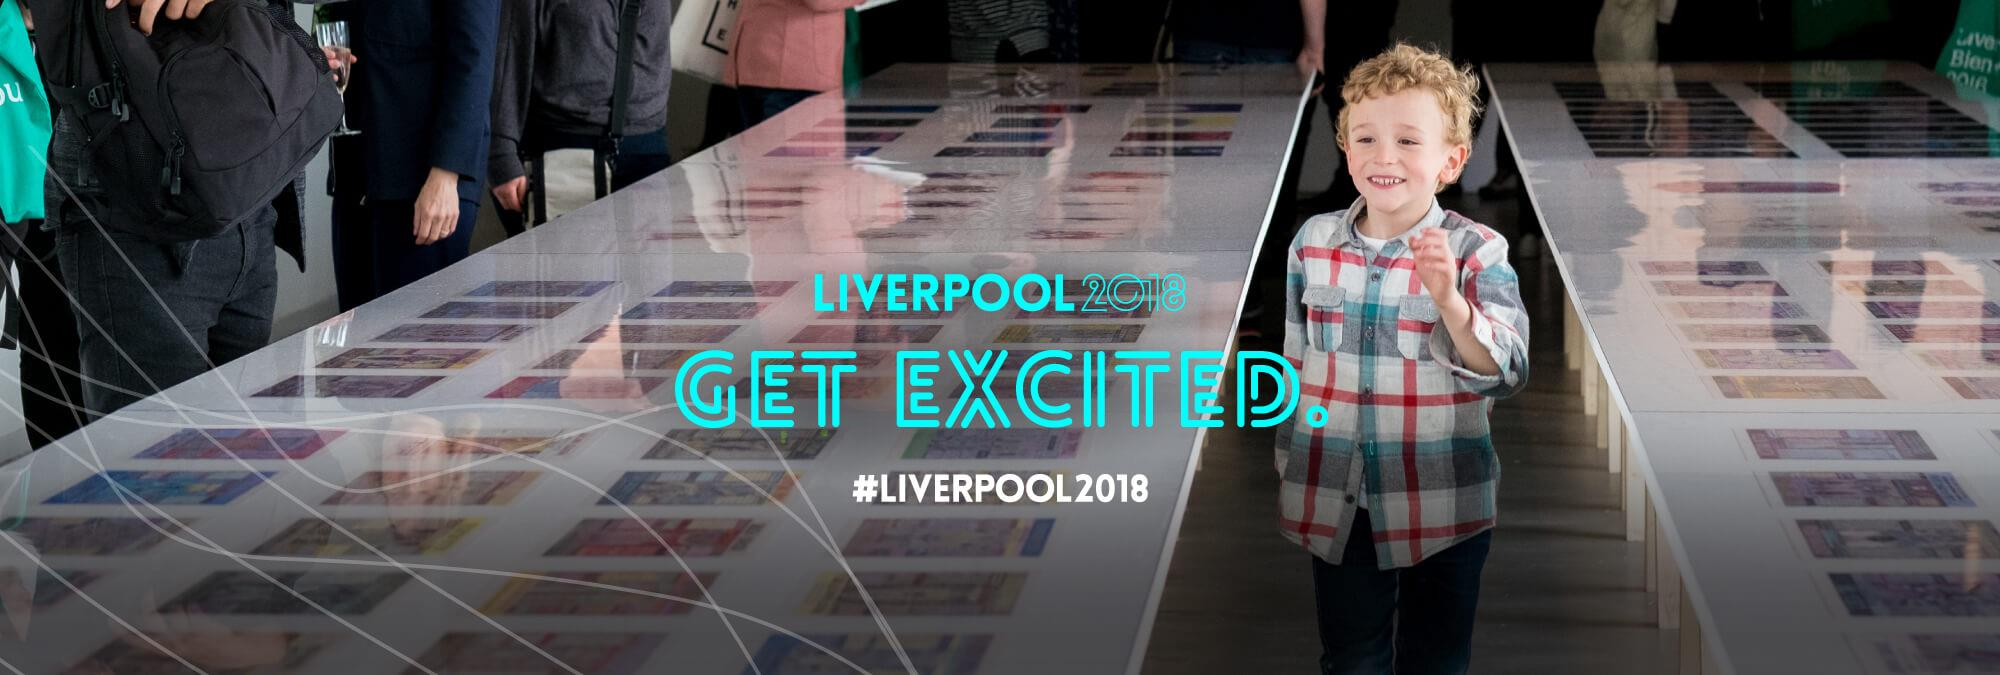 Get Excited for Liverpool 2018